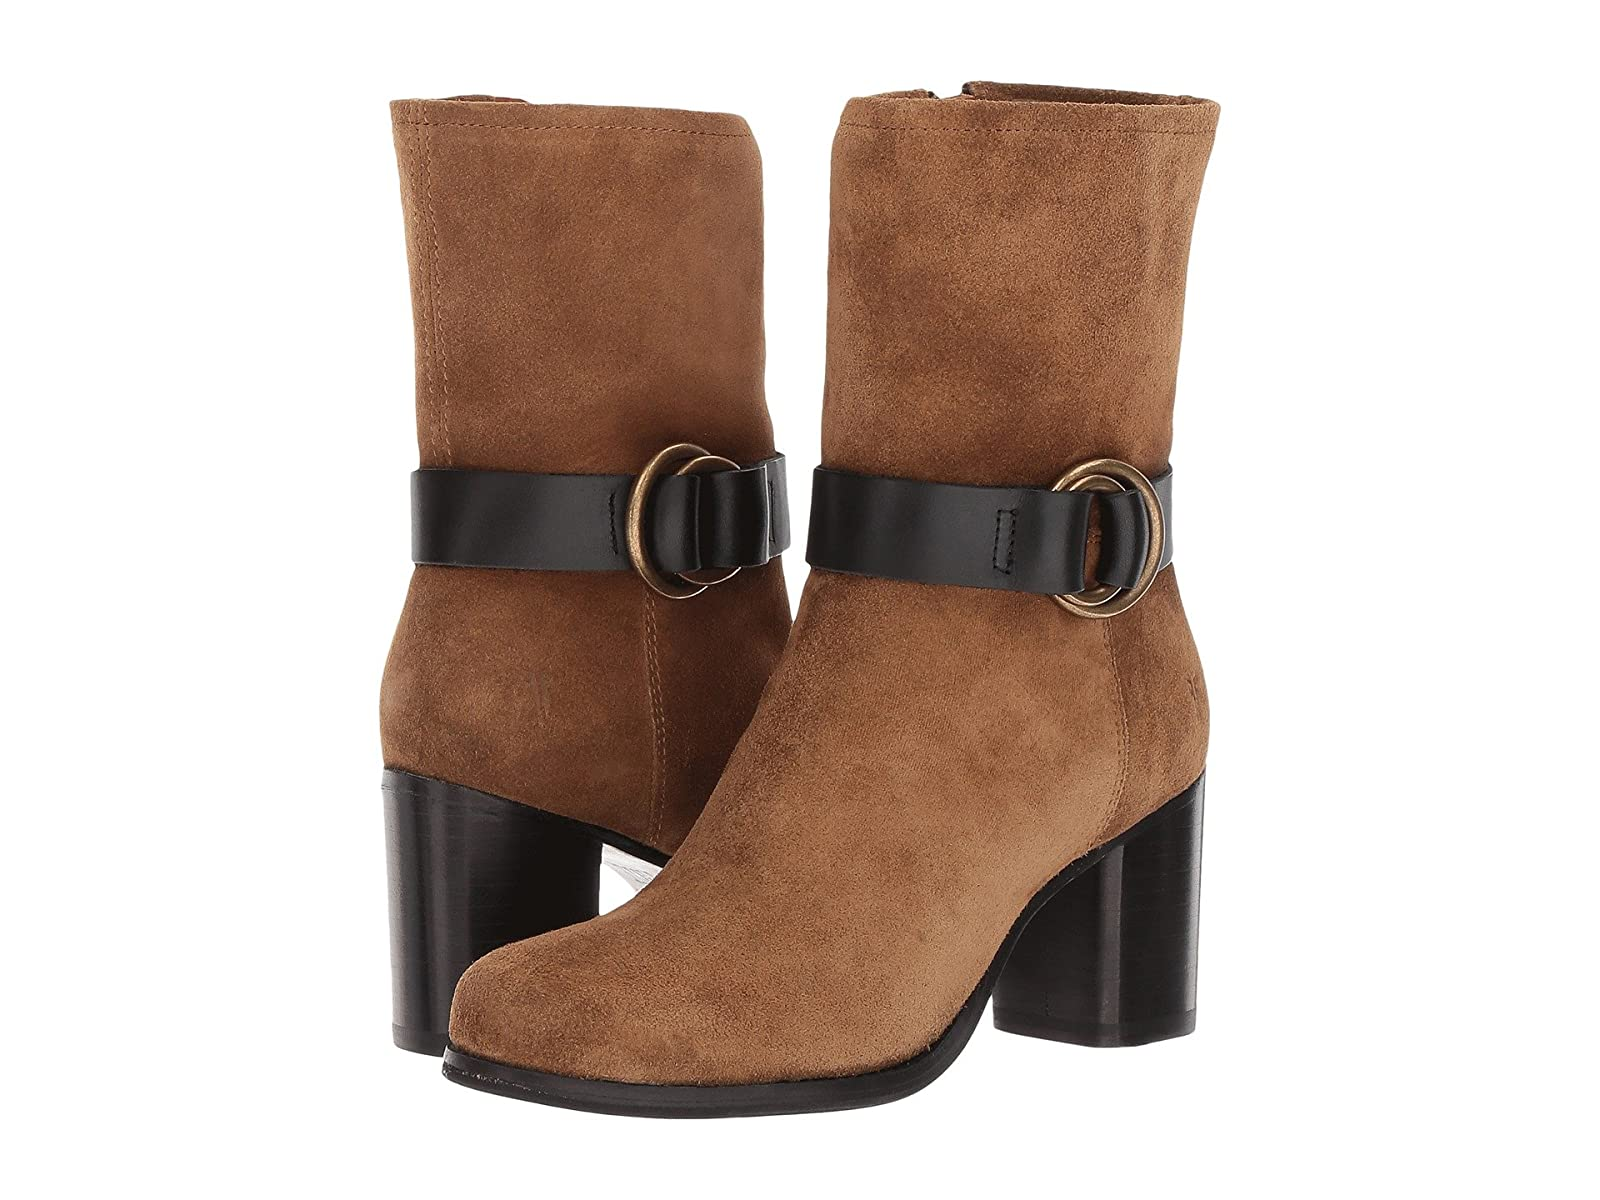 Frye Addie Harness MidCheap and distinctive eye-catching shoes